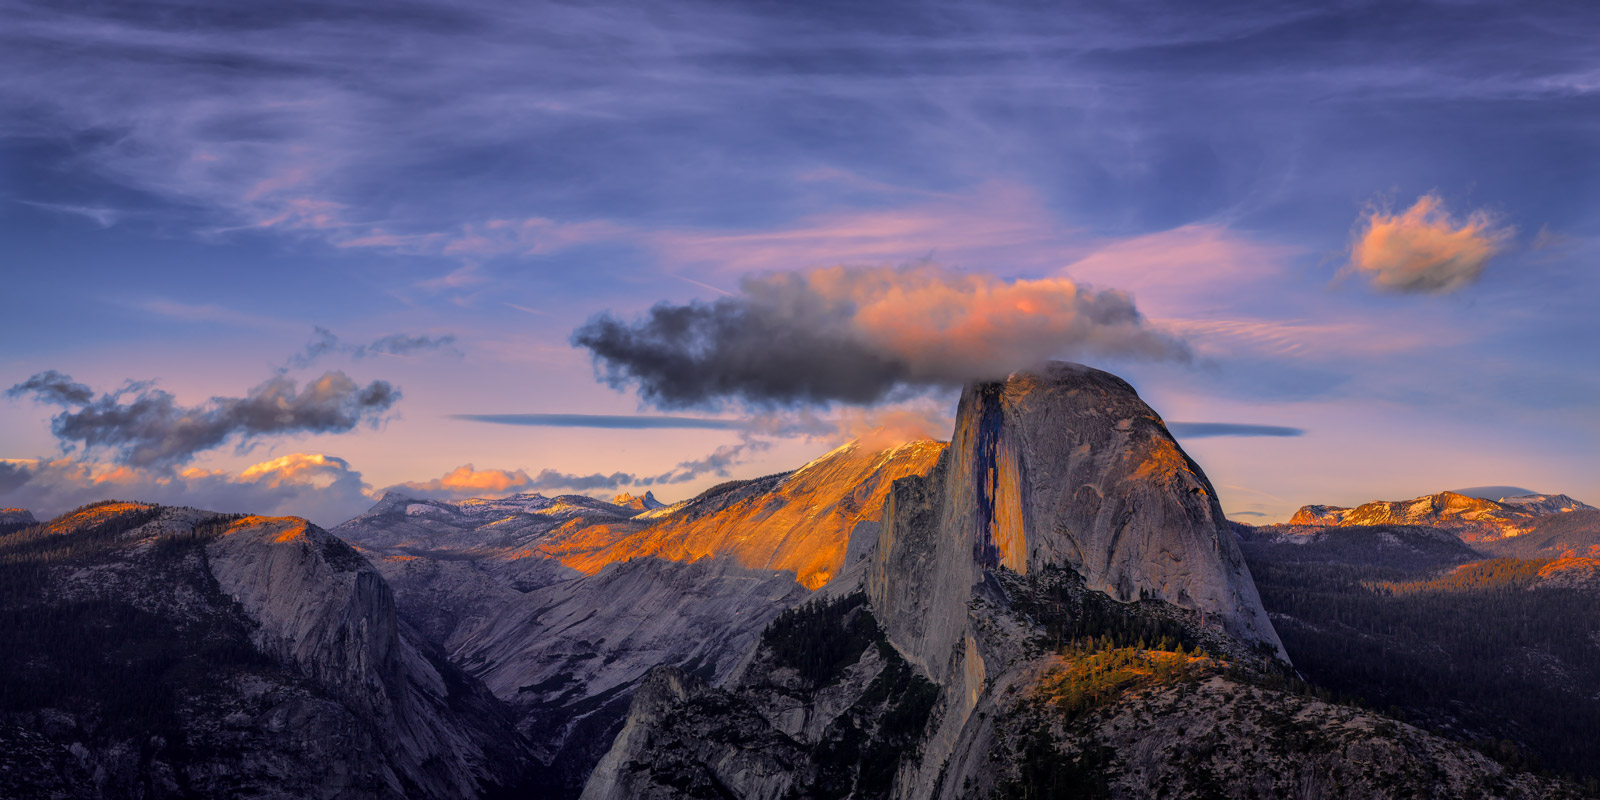 A Limited Edition, Fine Art photograph of a colorful dusk sunset over Half Dome from Glacier Point at Yosemite National Park...